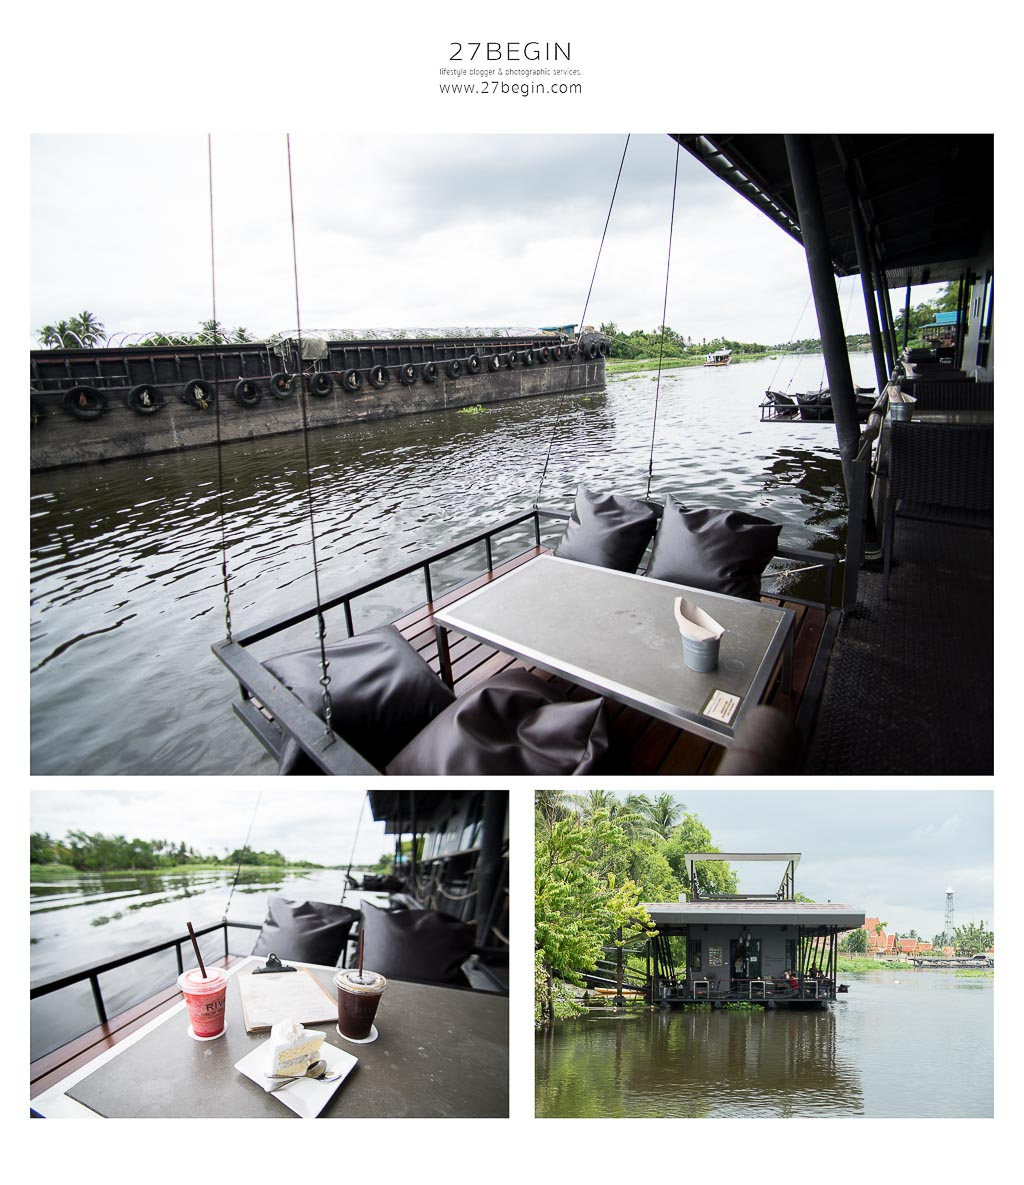 27begin_riverfloatingcafe19